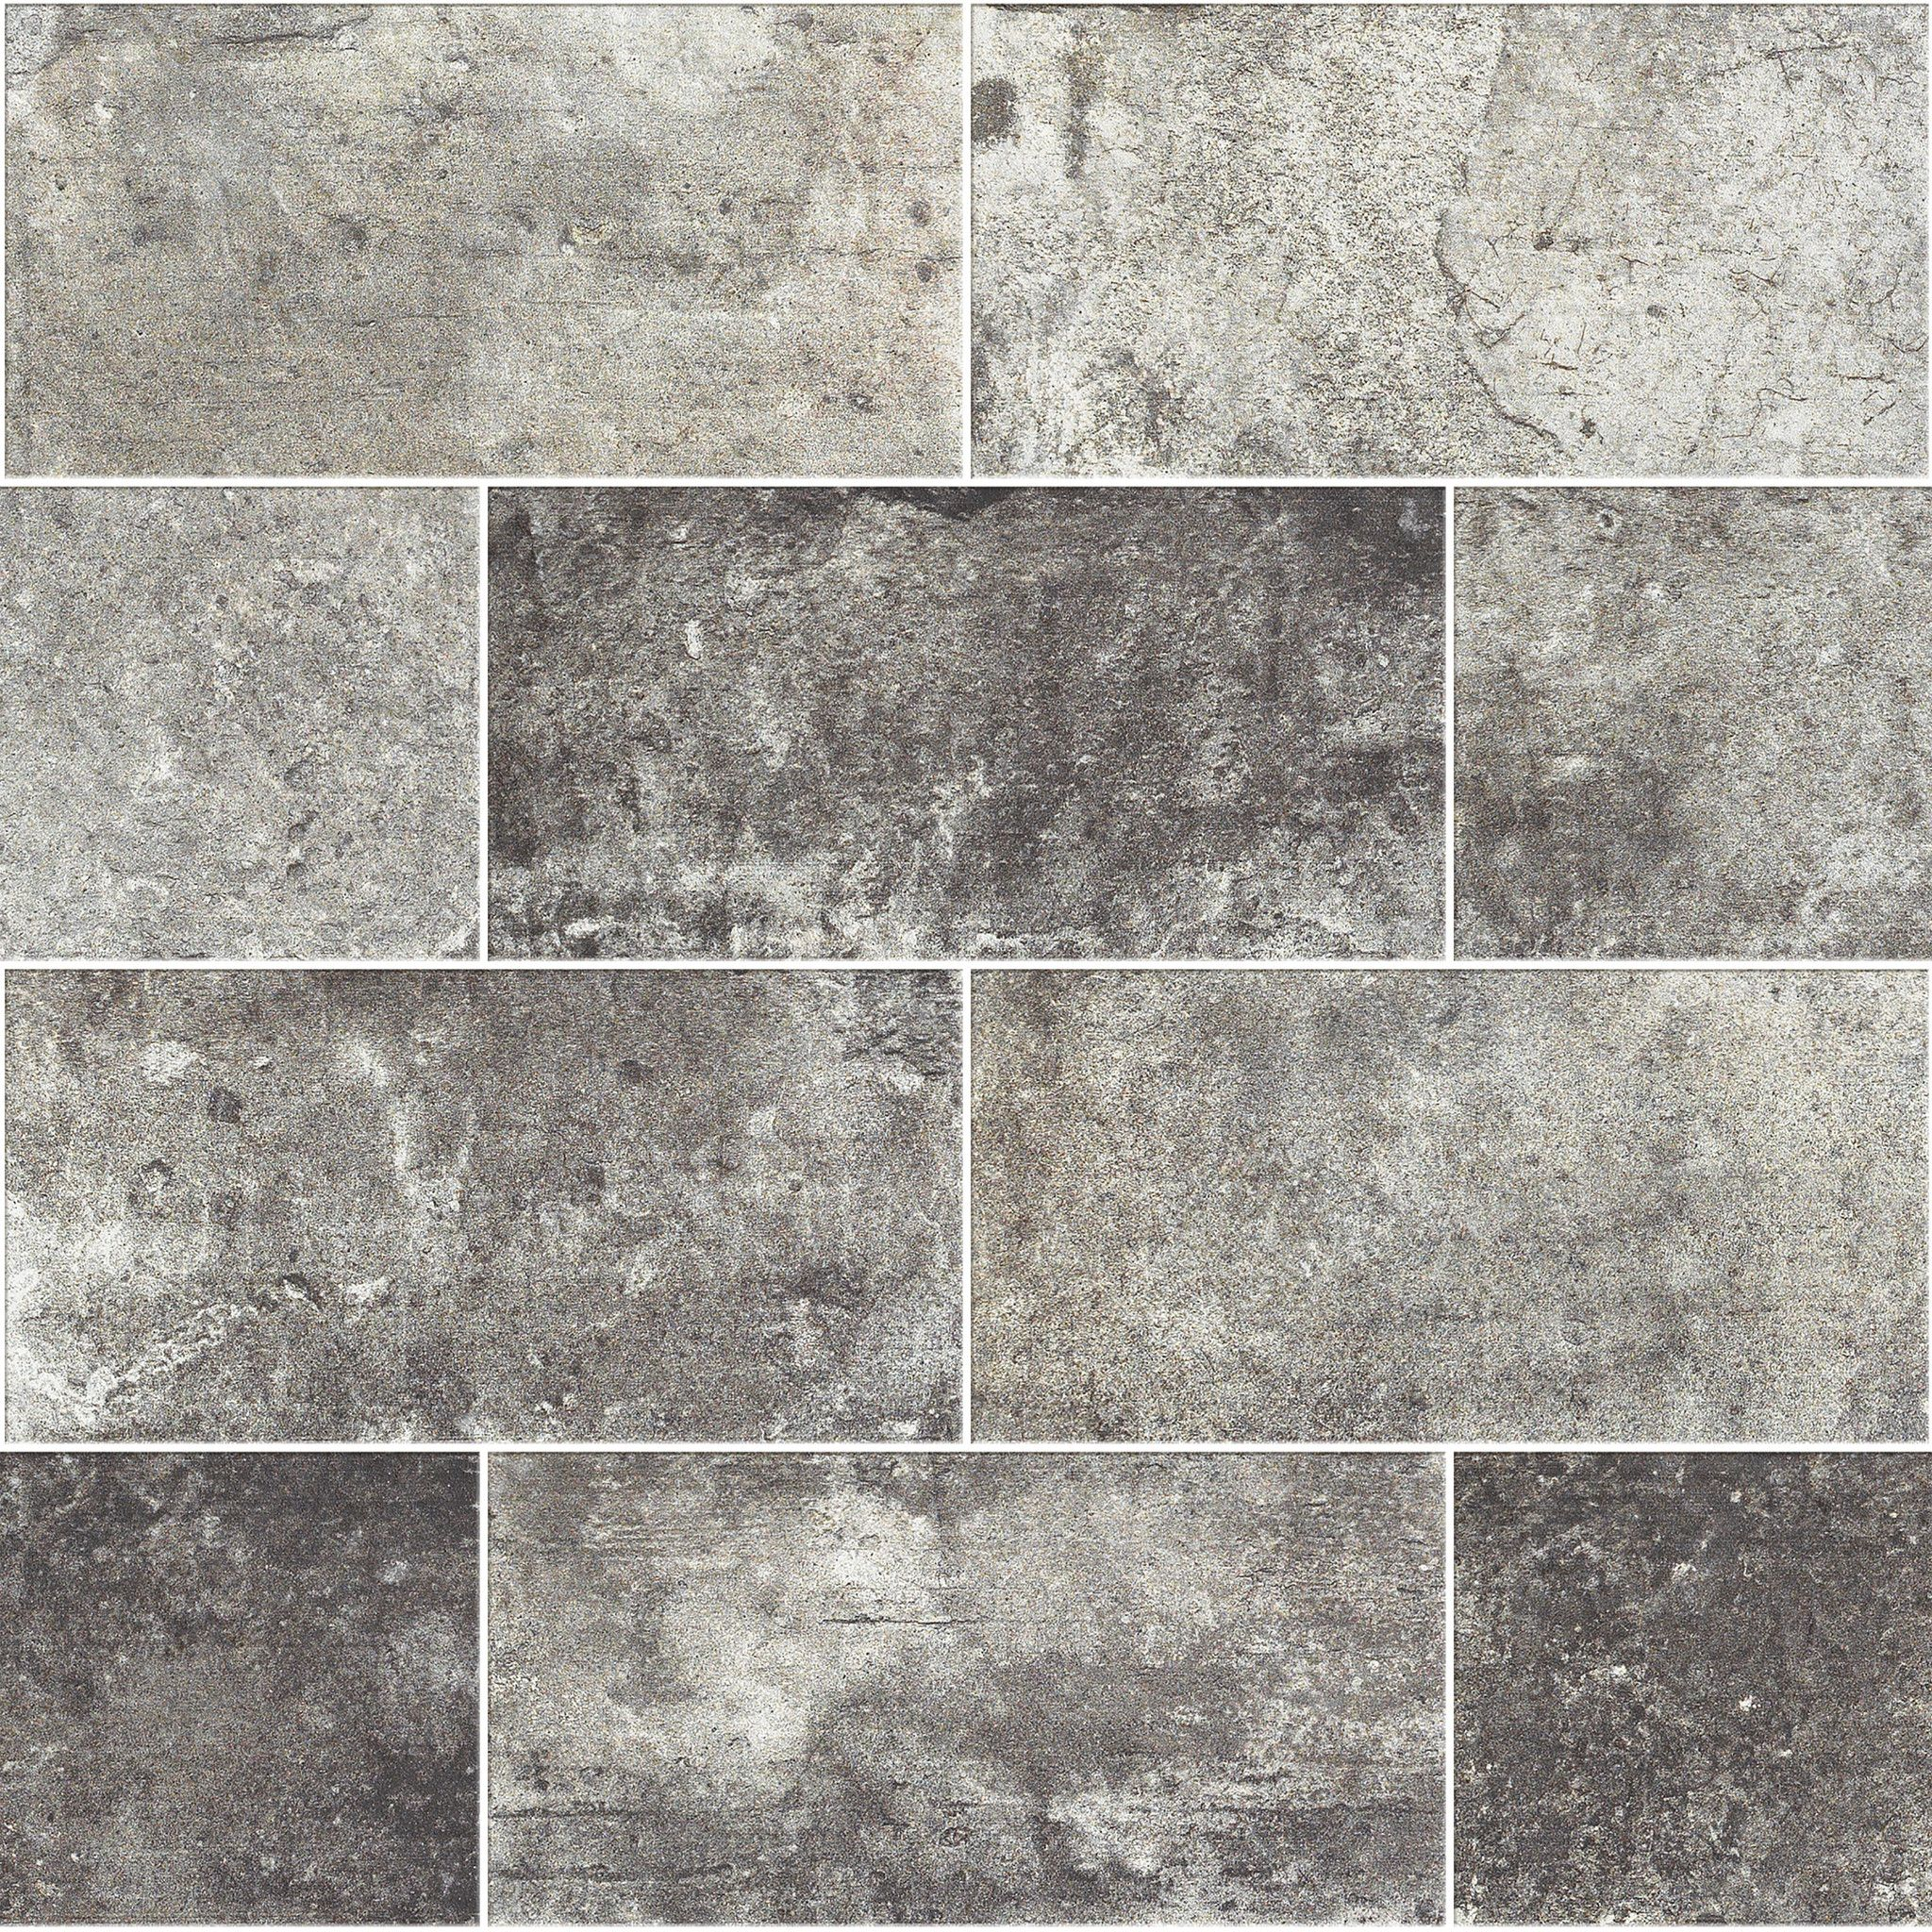 Style name and number: San Francisco 4″x8″ CS64M and color name and number: Lombard 00500